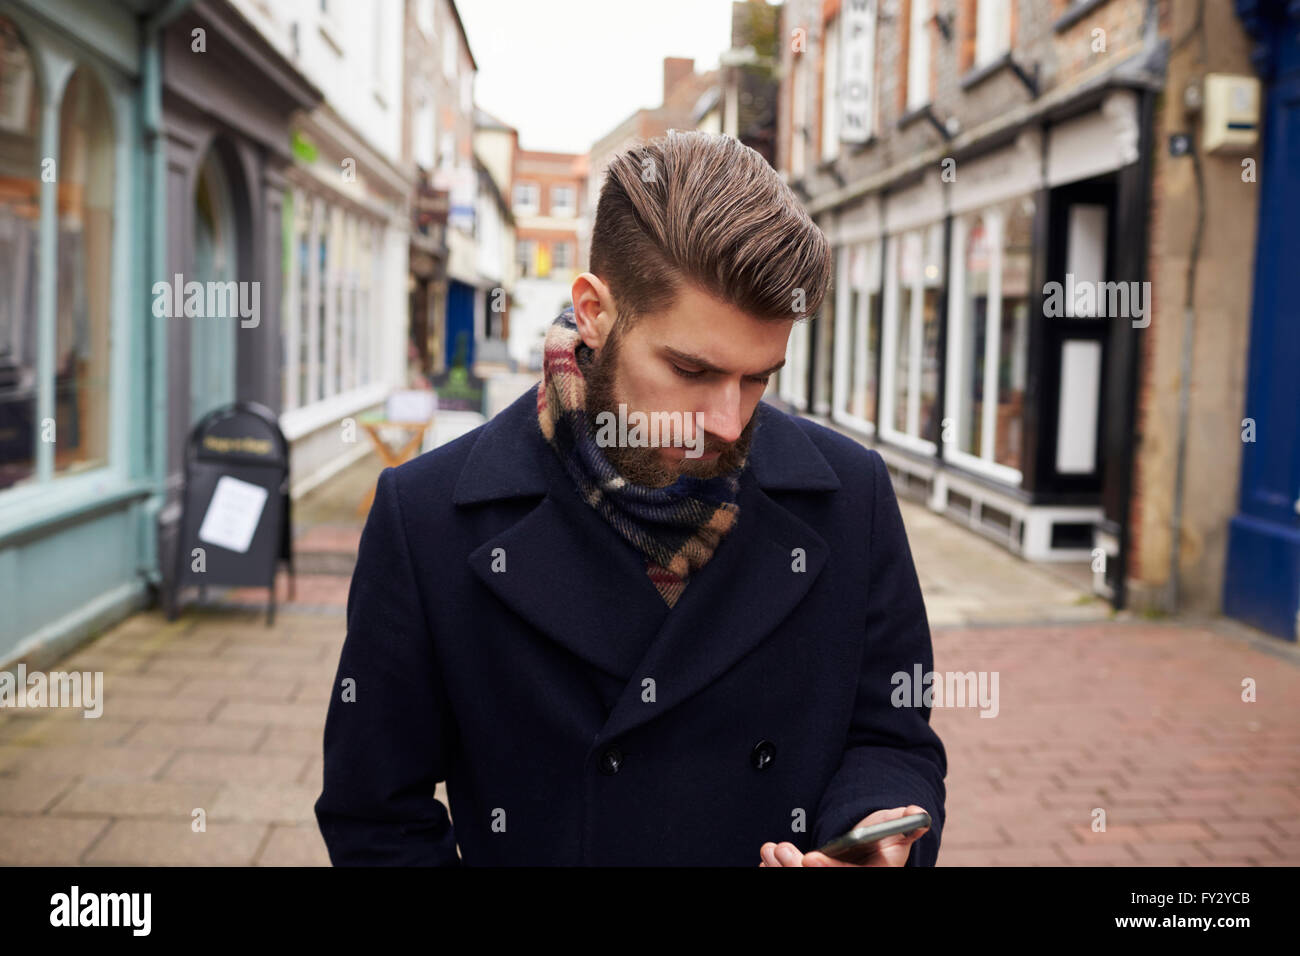 Man Walking Down Urban Street Checking Text Message On Phone - Stock Image